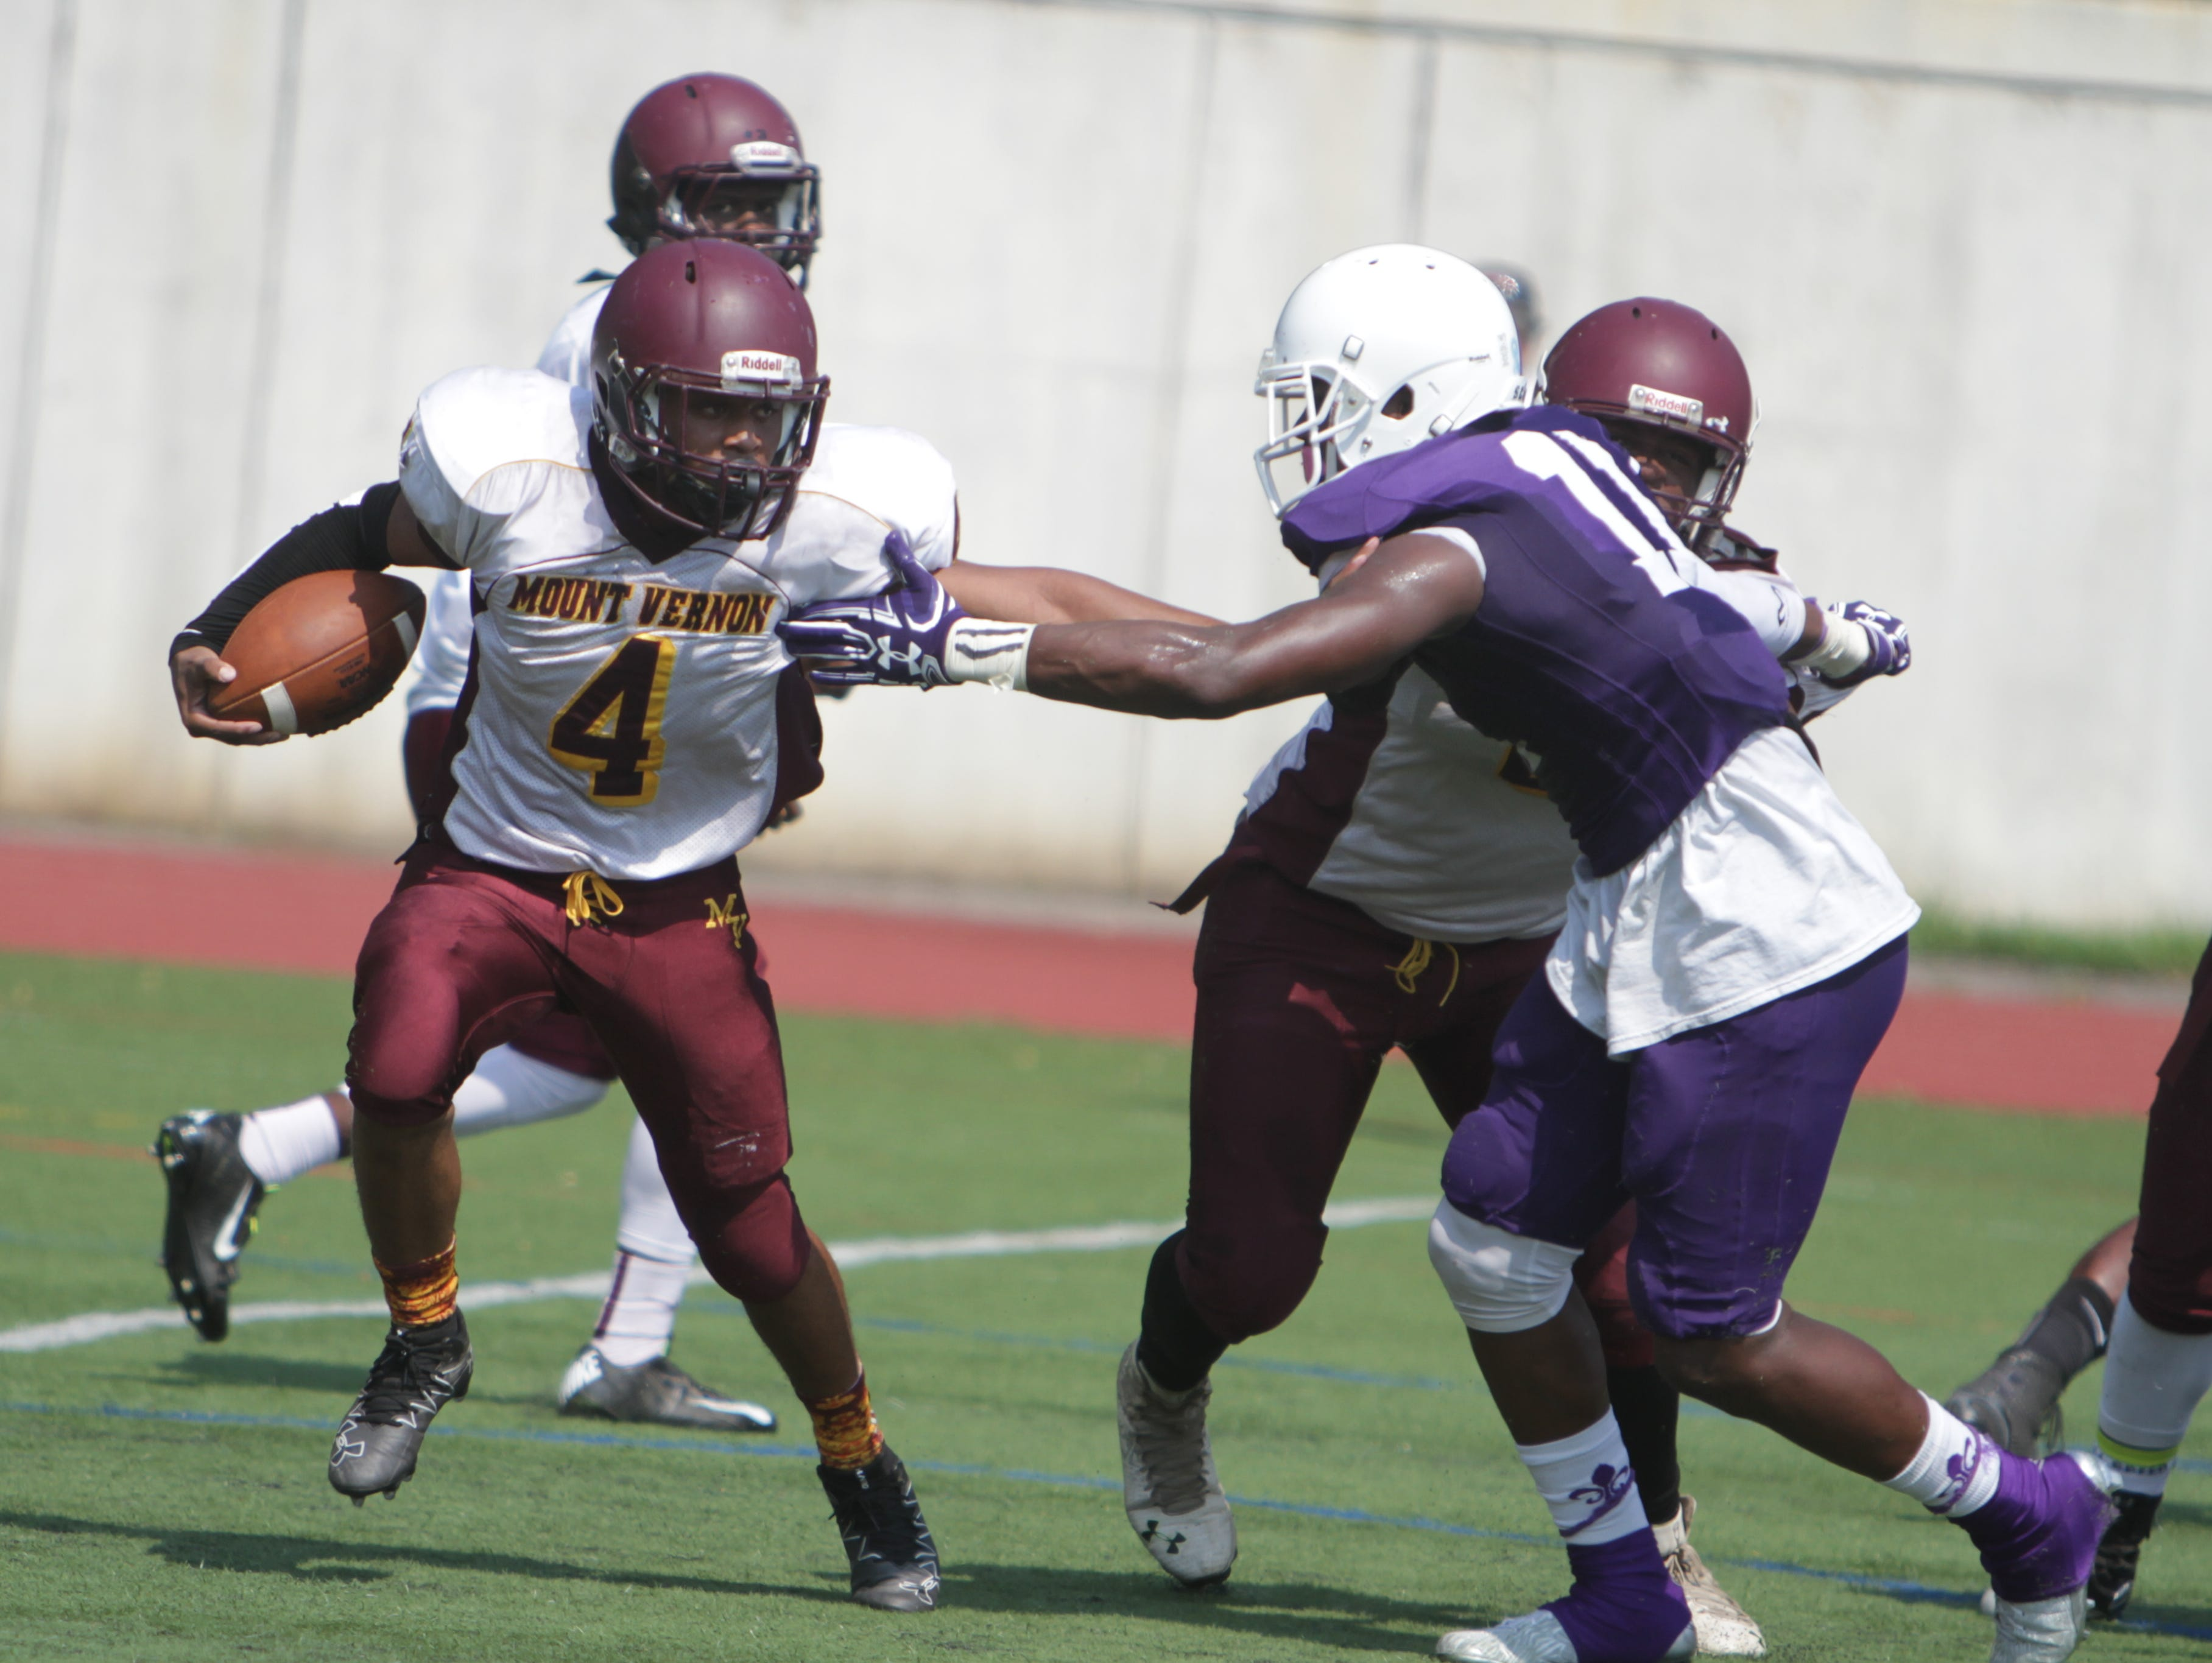 Mount Vernon's Carlton Naughton attempts to hold off New Rochelle's Khairi Manns during a Section 1, Class AA football game between New Rochelle and Mount Vernon at New Rochelle High School on Sept. 10th, 2016. New Rochelle won 40-6.